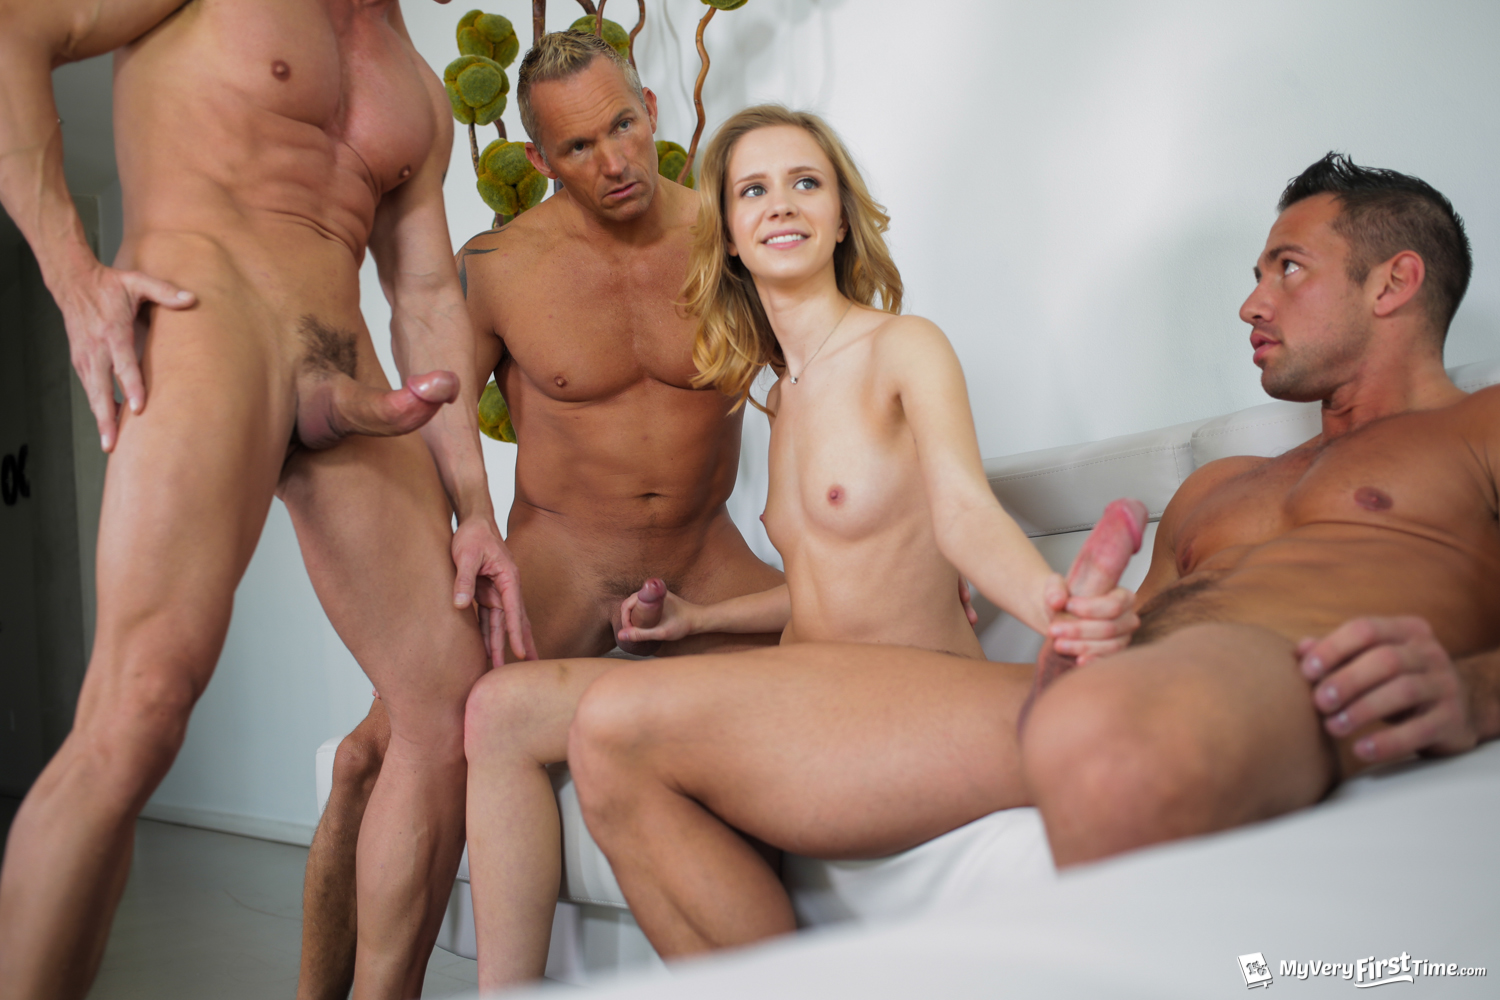 Rachel James In Her First Gangbang - 4K Free Porn-4434